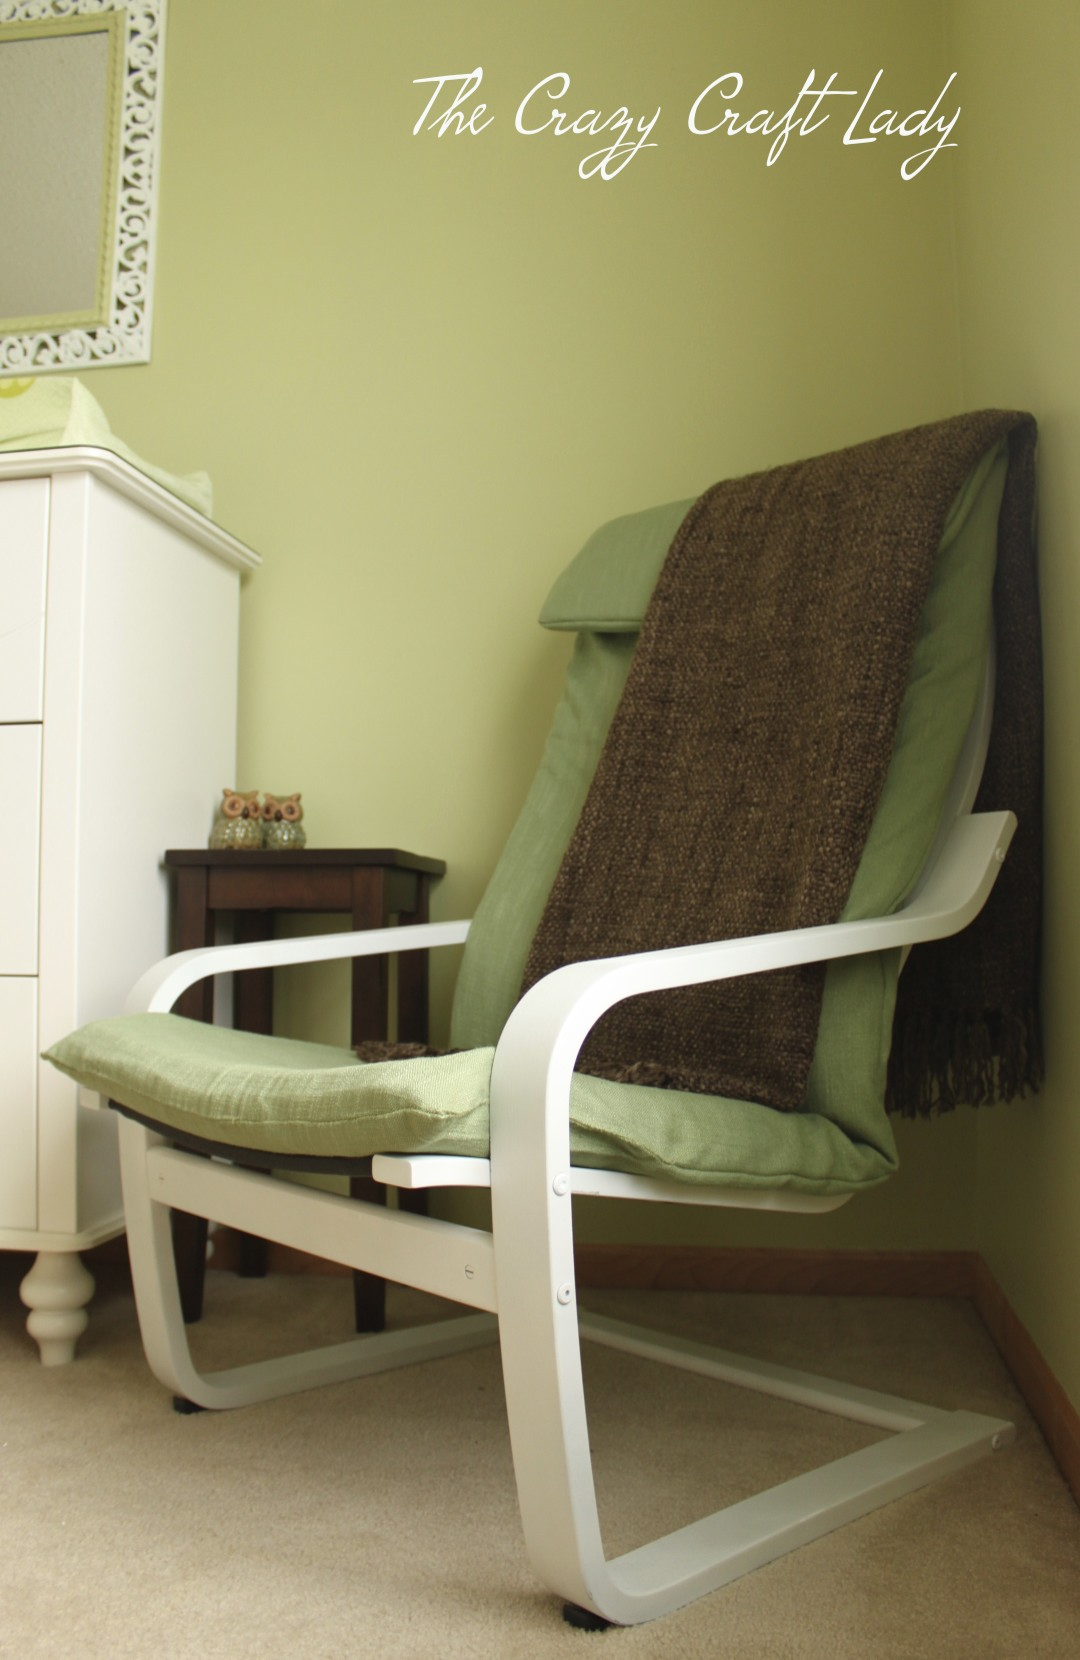 ... Ikea Poang chair. Save & nursery ikea chair recover - The Crazy Craft Lady